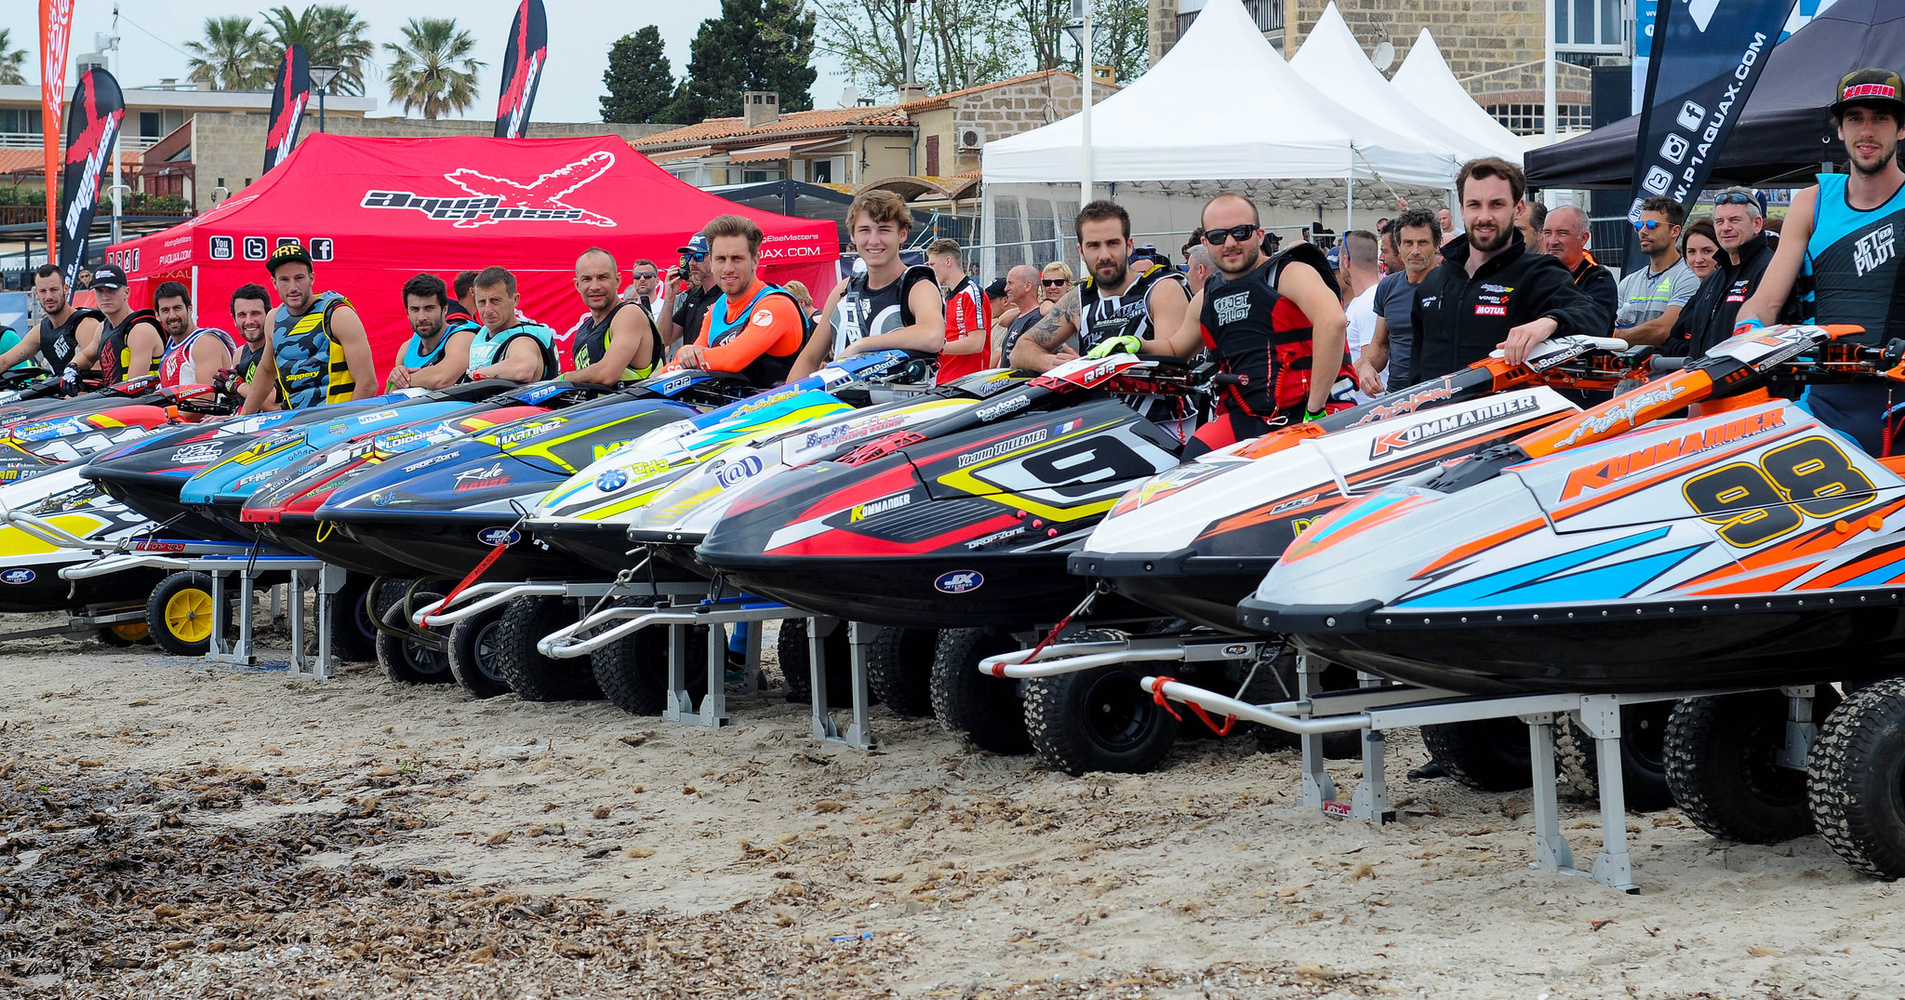 The Pro class line up for their final race of the weekend in La Seyne-Sur_mer